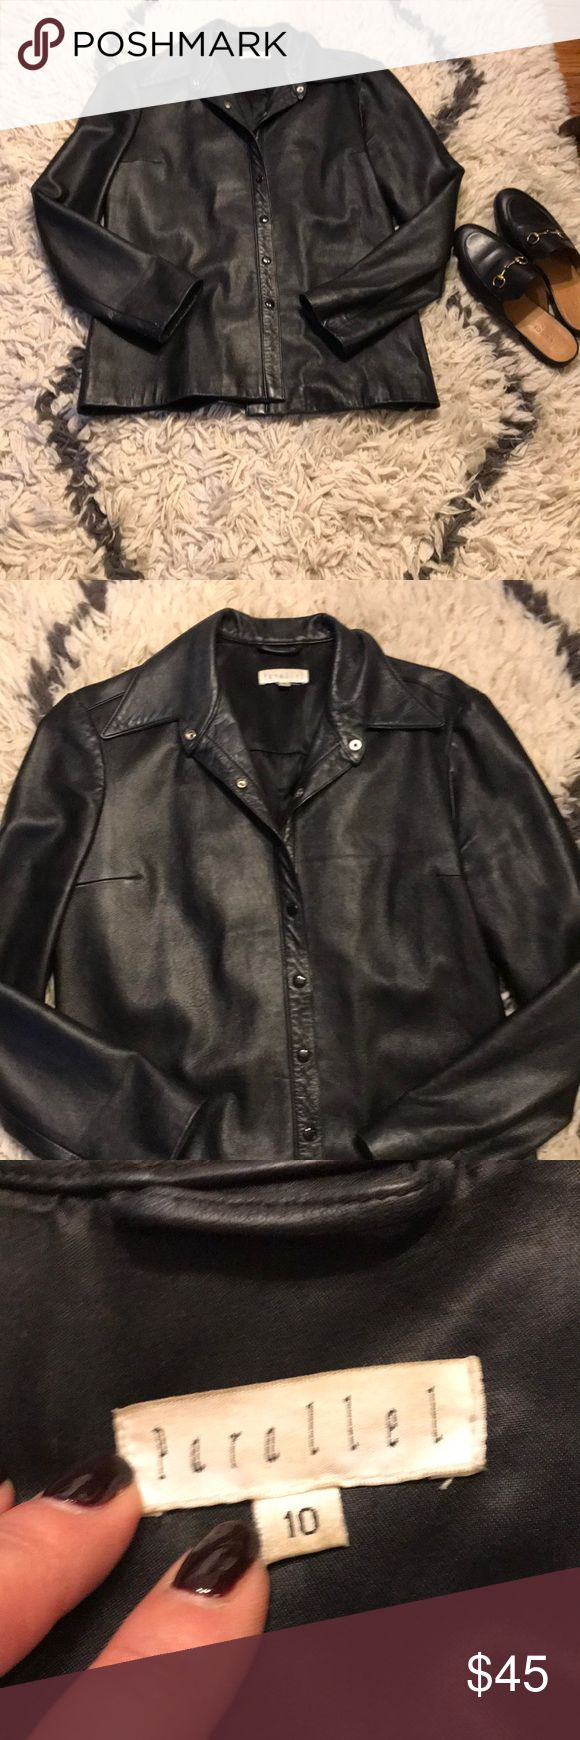 FLASH SALE 🎉Black leather jacket w snaps Lightweight, buttery soft leather jacket, styled like a shirt with snap closures. down the front. EUC no signs of wear. Broken top snap just noticed as I never buttoned the top. Easy fix. Will price accordingly. Comfortable and effortlessly cool. Parallel Jackets & Coats